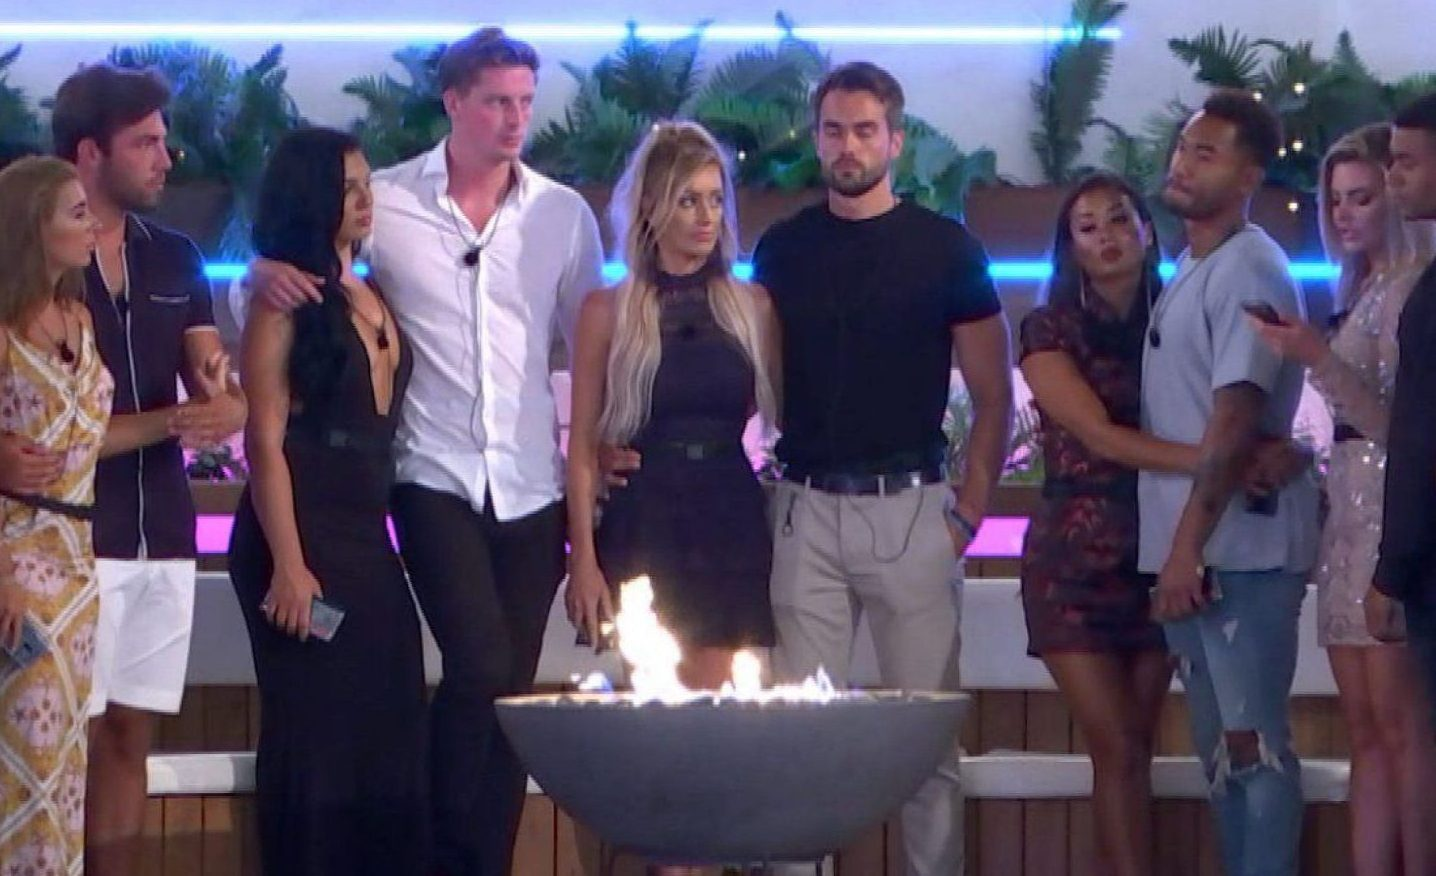 Editorial Use Only. No Merchandising. No Commercial Use. Mandatory Credit: Photo by ITV/REX/Shutterstock (9767607q) Islanders prepare for a dumping. 'Love Island' TV Show, Series 4, Episode 49, Majorca, Spain - 22 Jul 2018 Wes and Megan get caught in the act. Date night gets Alex and Alexandra back on track. Another shock dumping hits the island. Girls horse around in Ladies Day challenge.